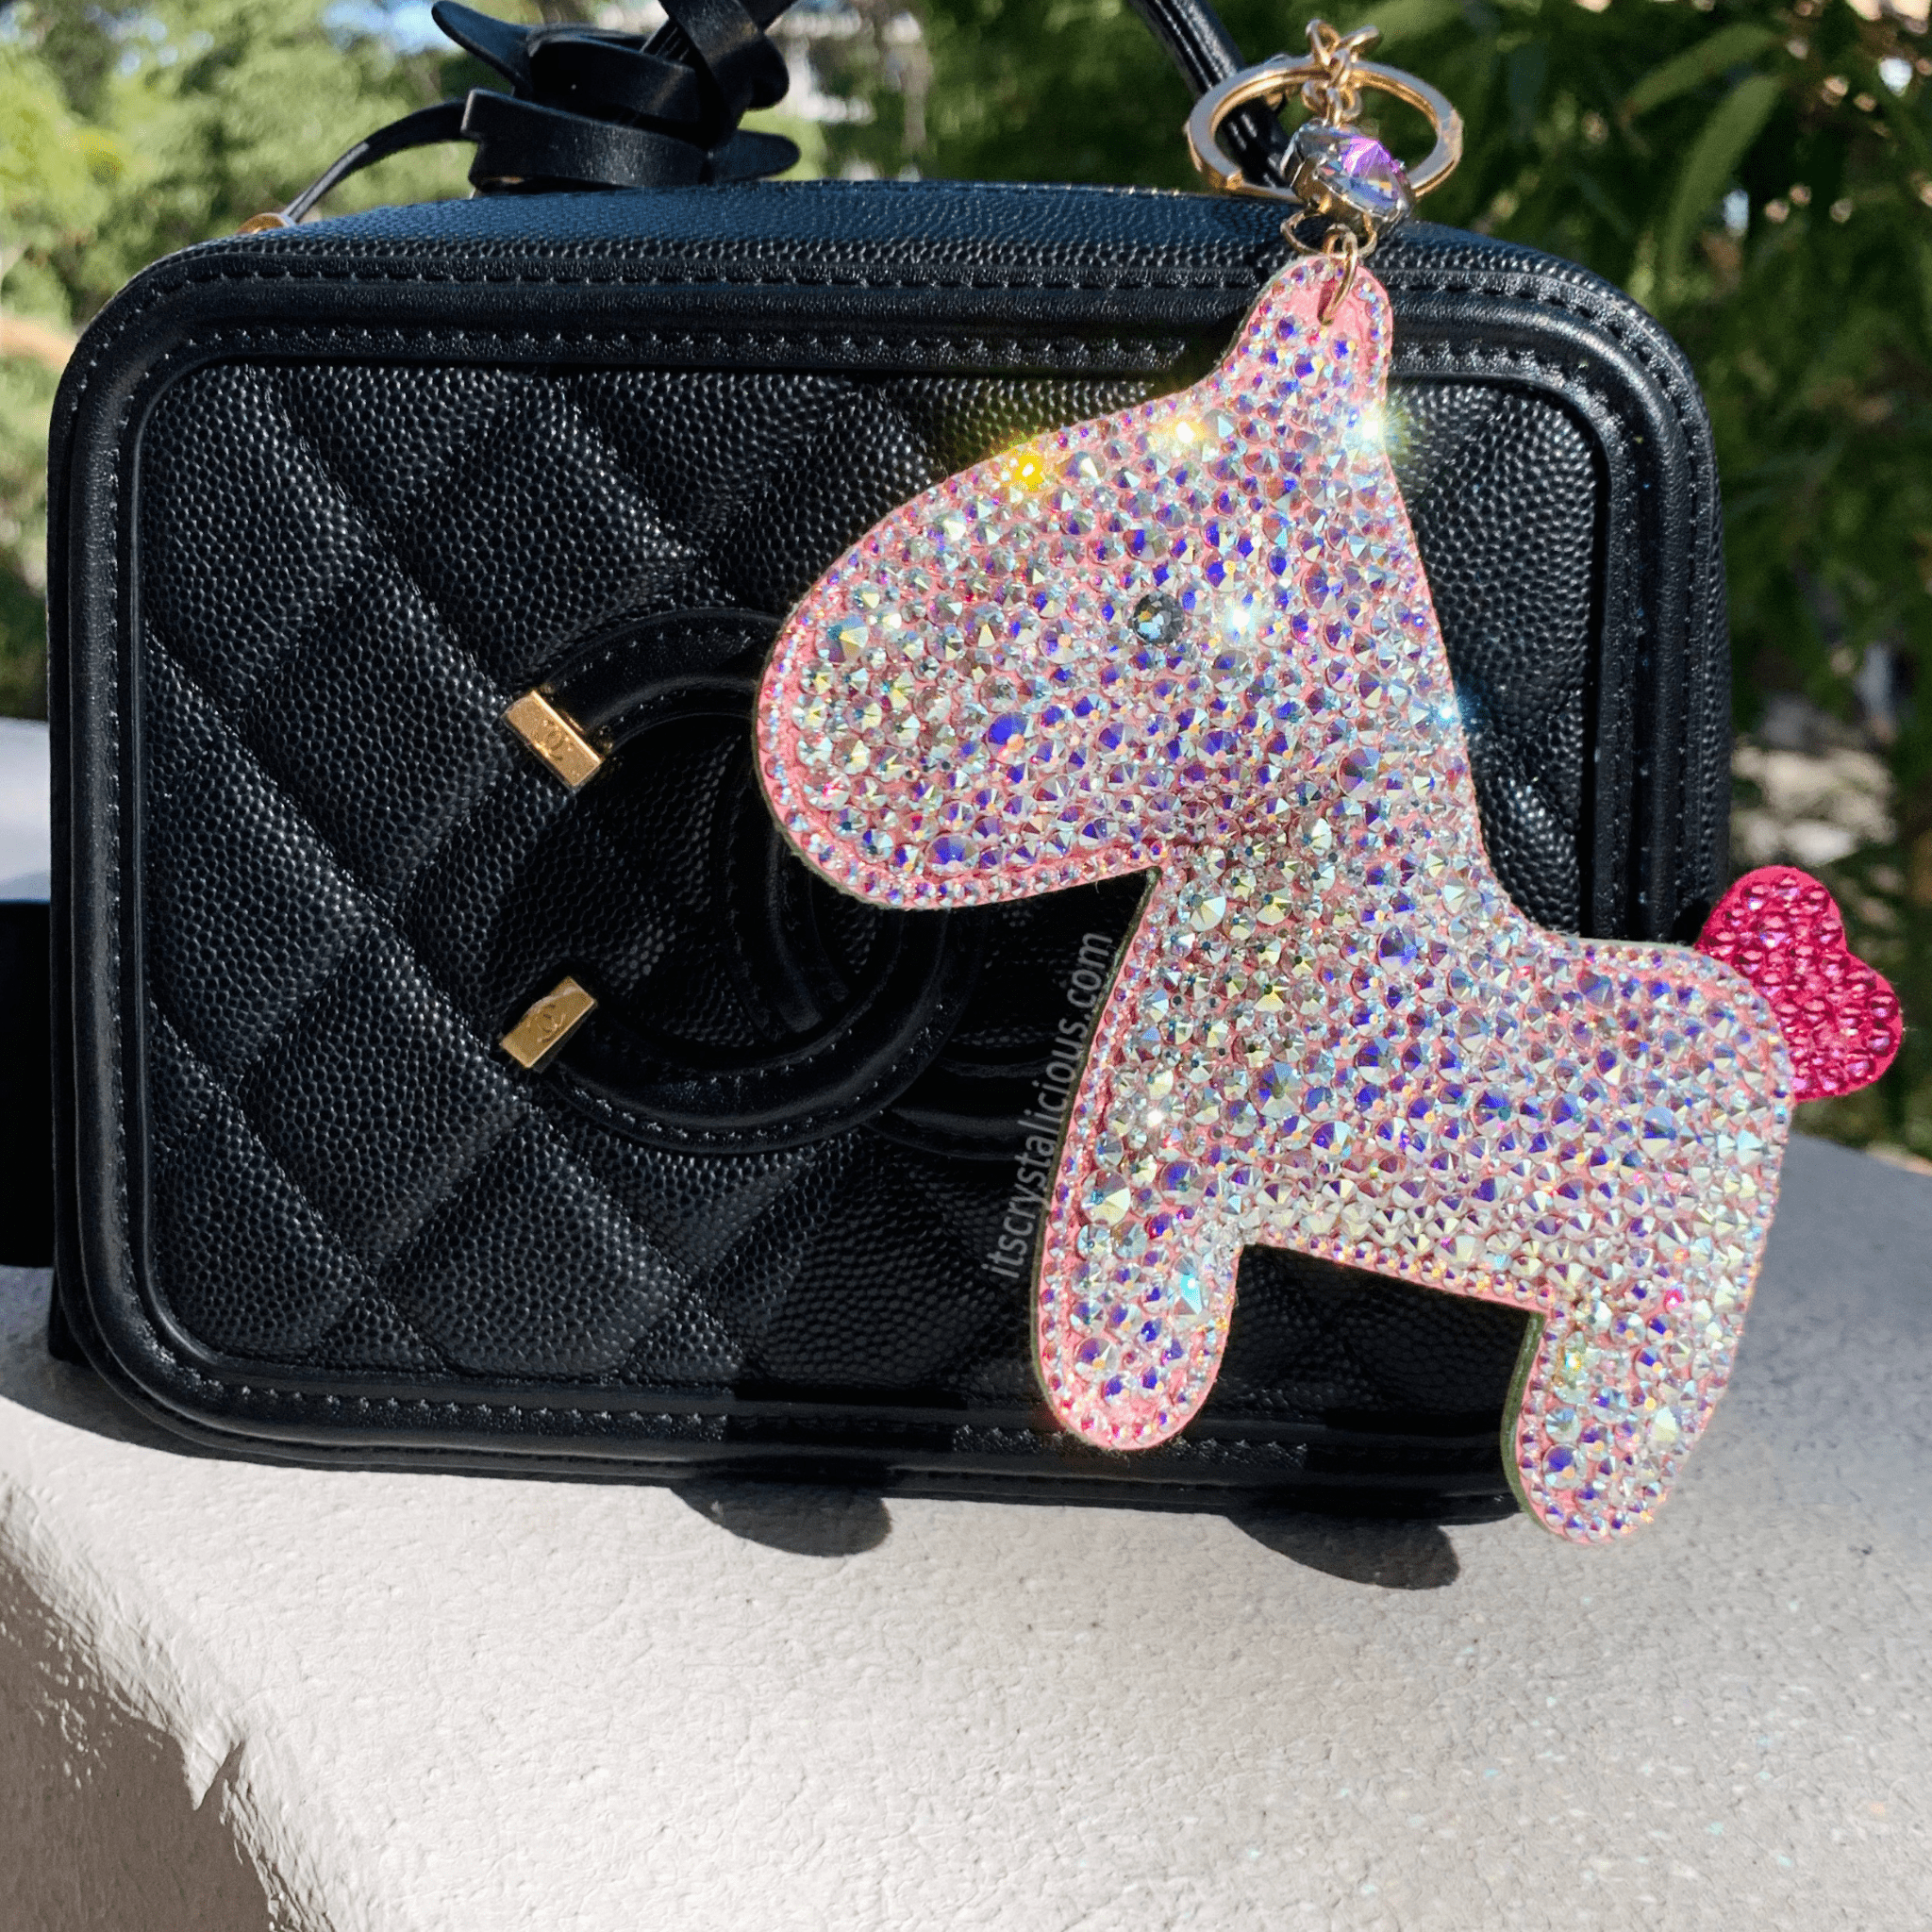 Leather Pony Crystal Bagcharm Keychain - Crystal AB * - It's Crystalicious®